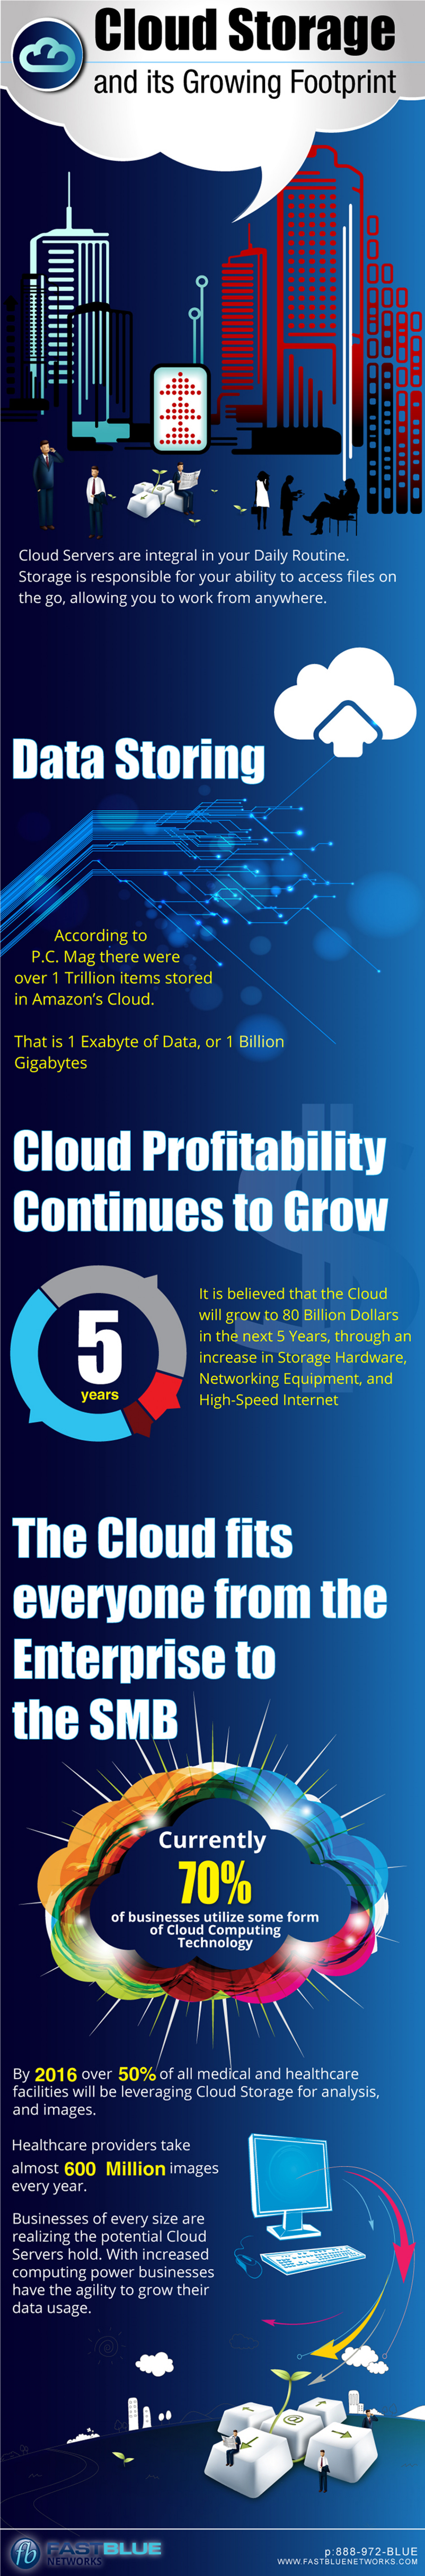 Cloud Storage and its Growing Footprint Infographic